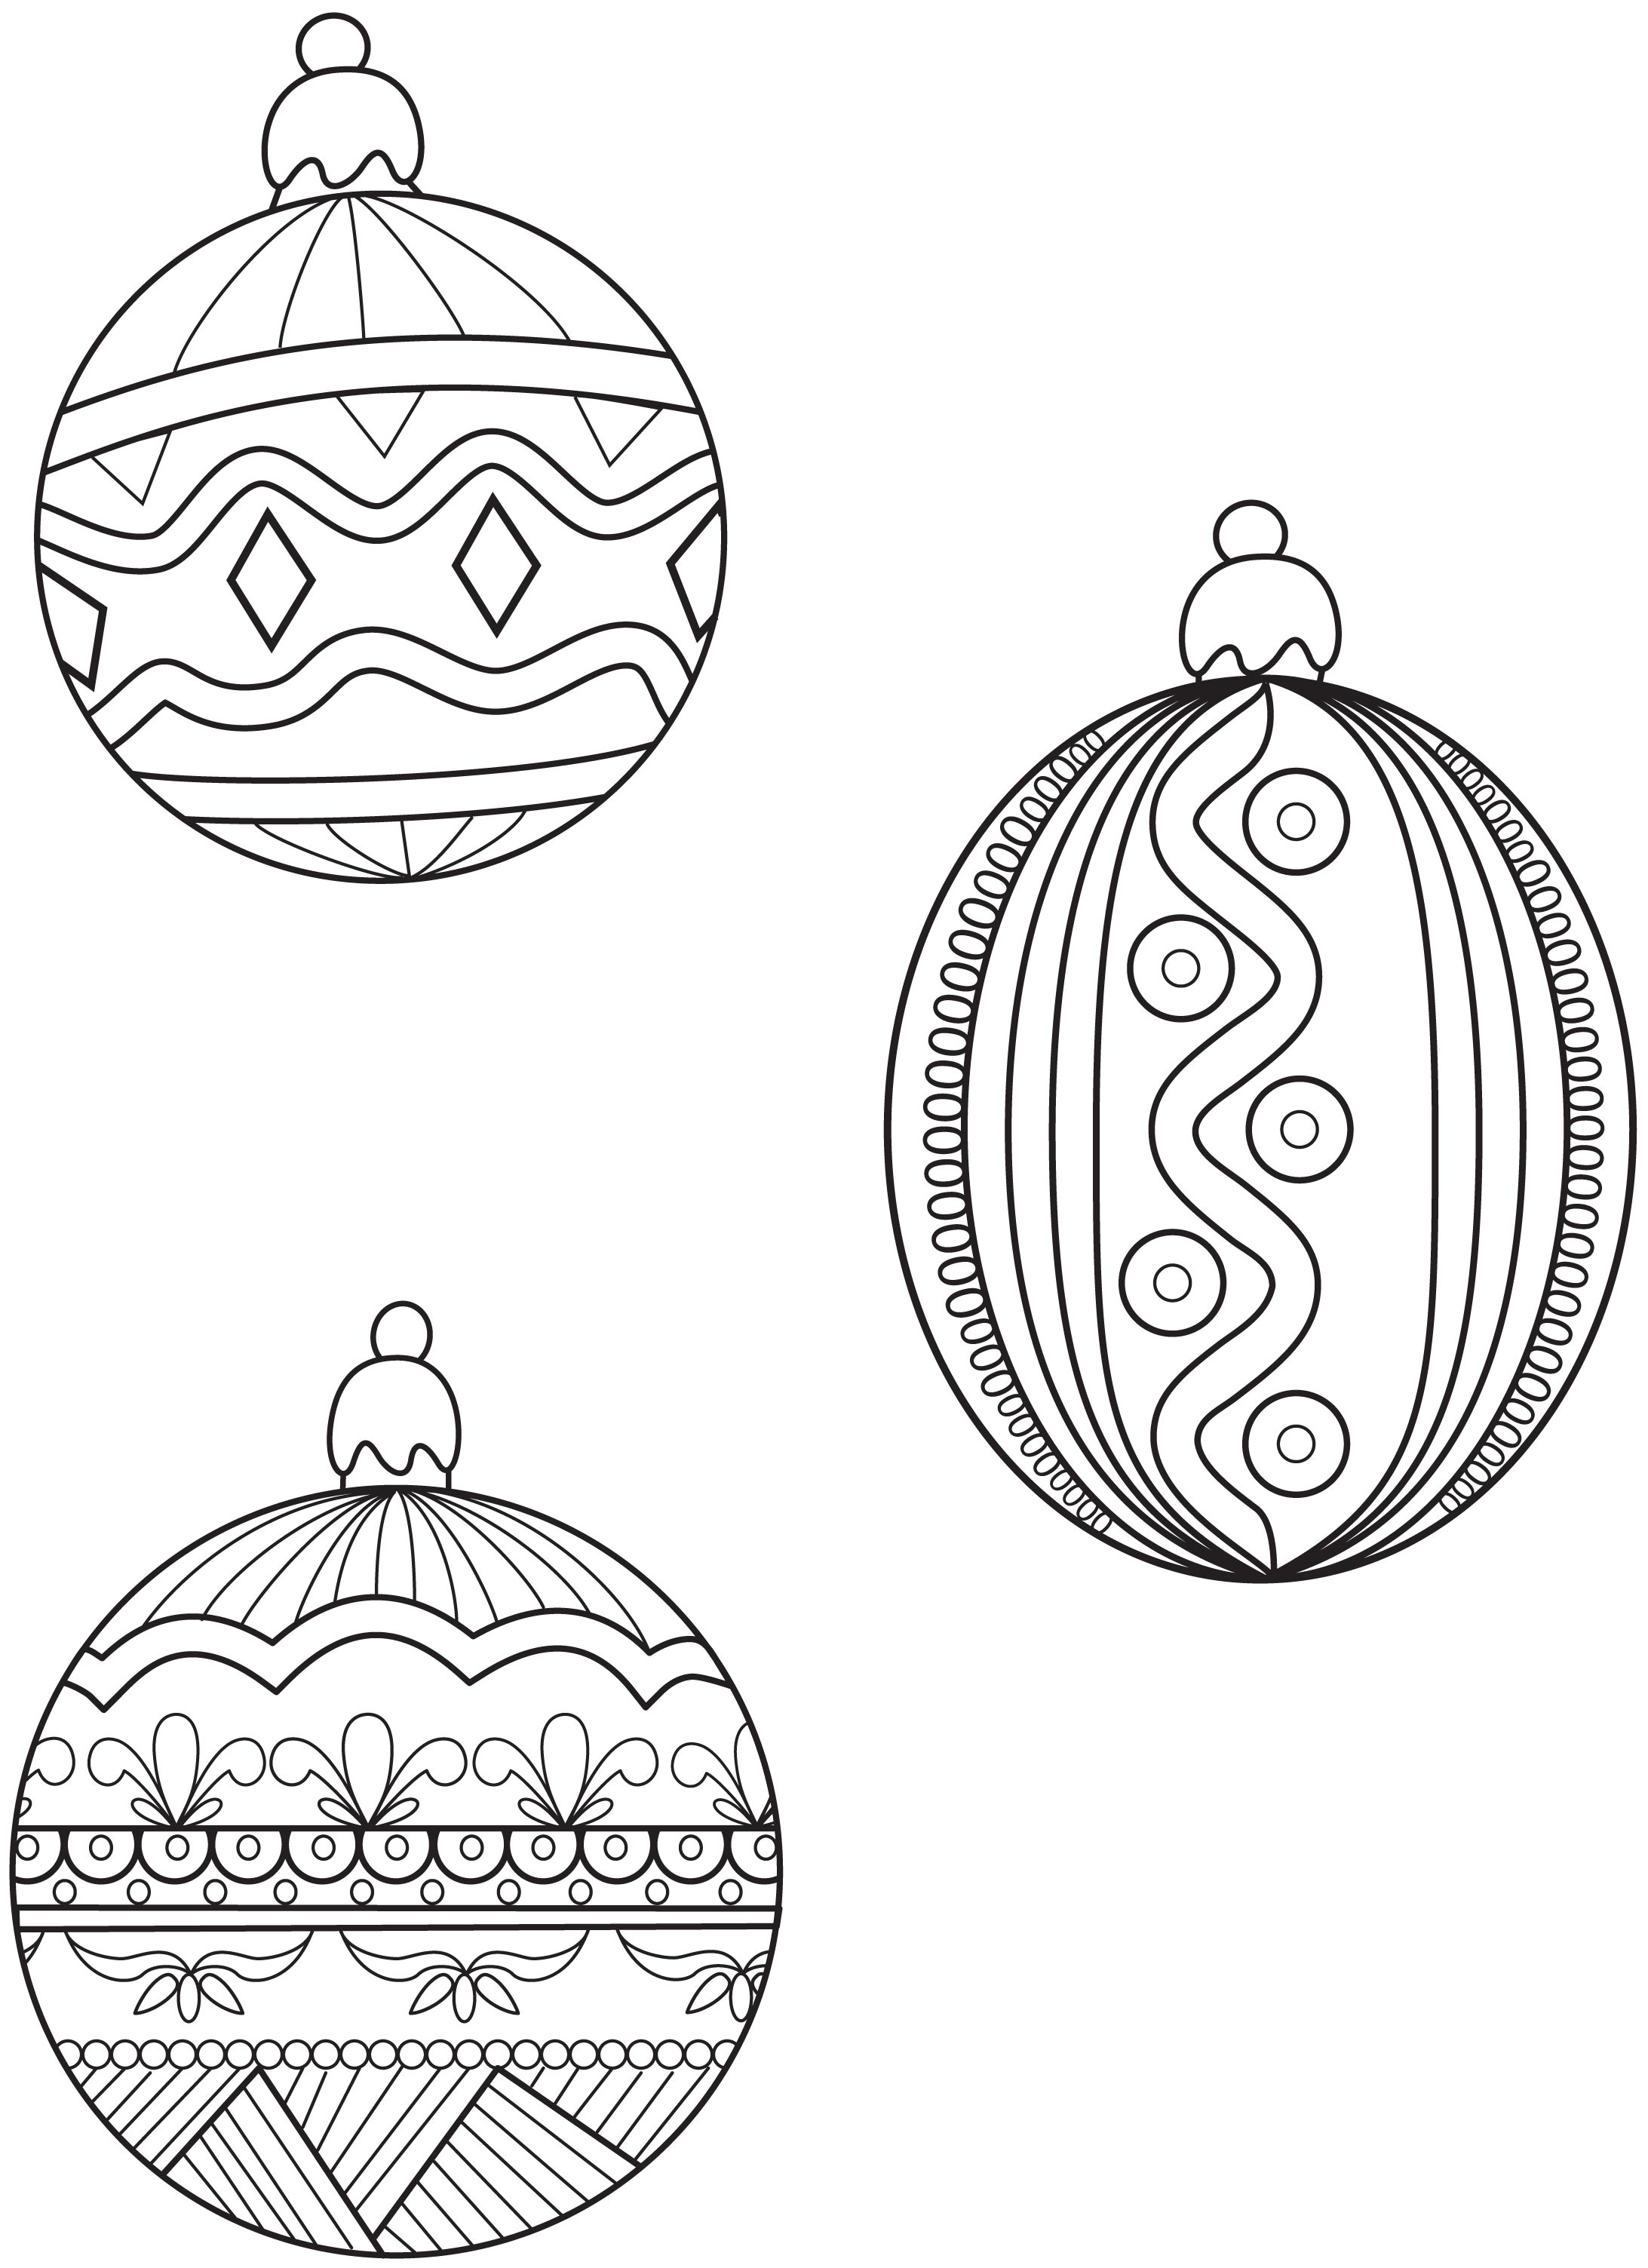 Zentangle Christmas Ornaments Coloring Pages Coloring Pages Ornament Coloring Pages